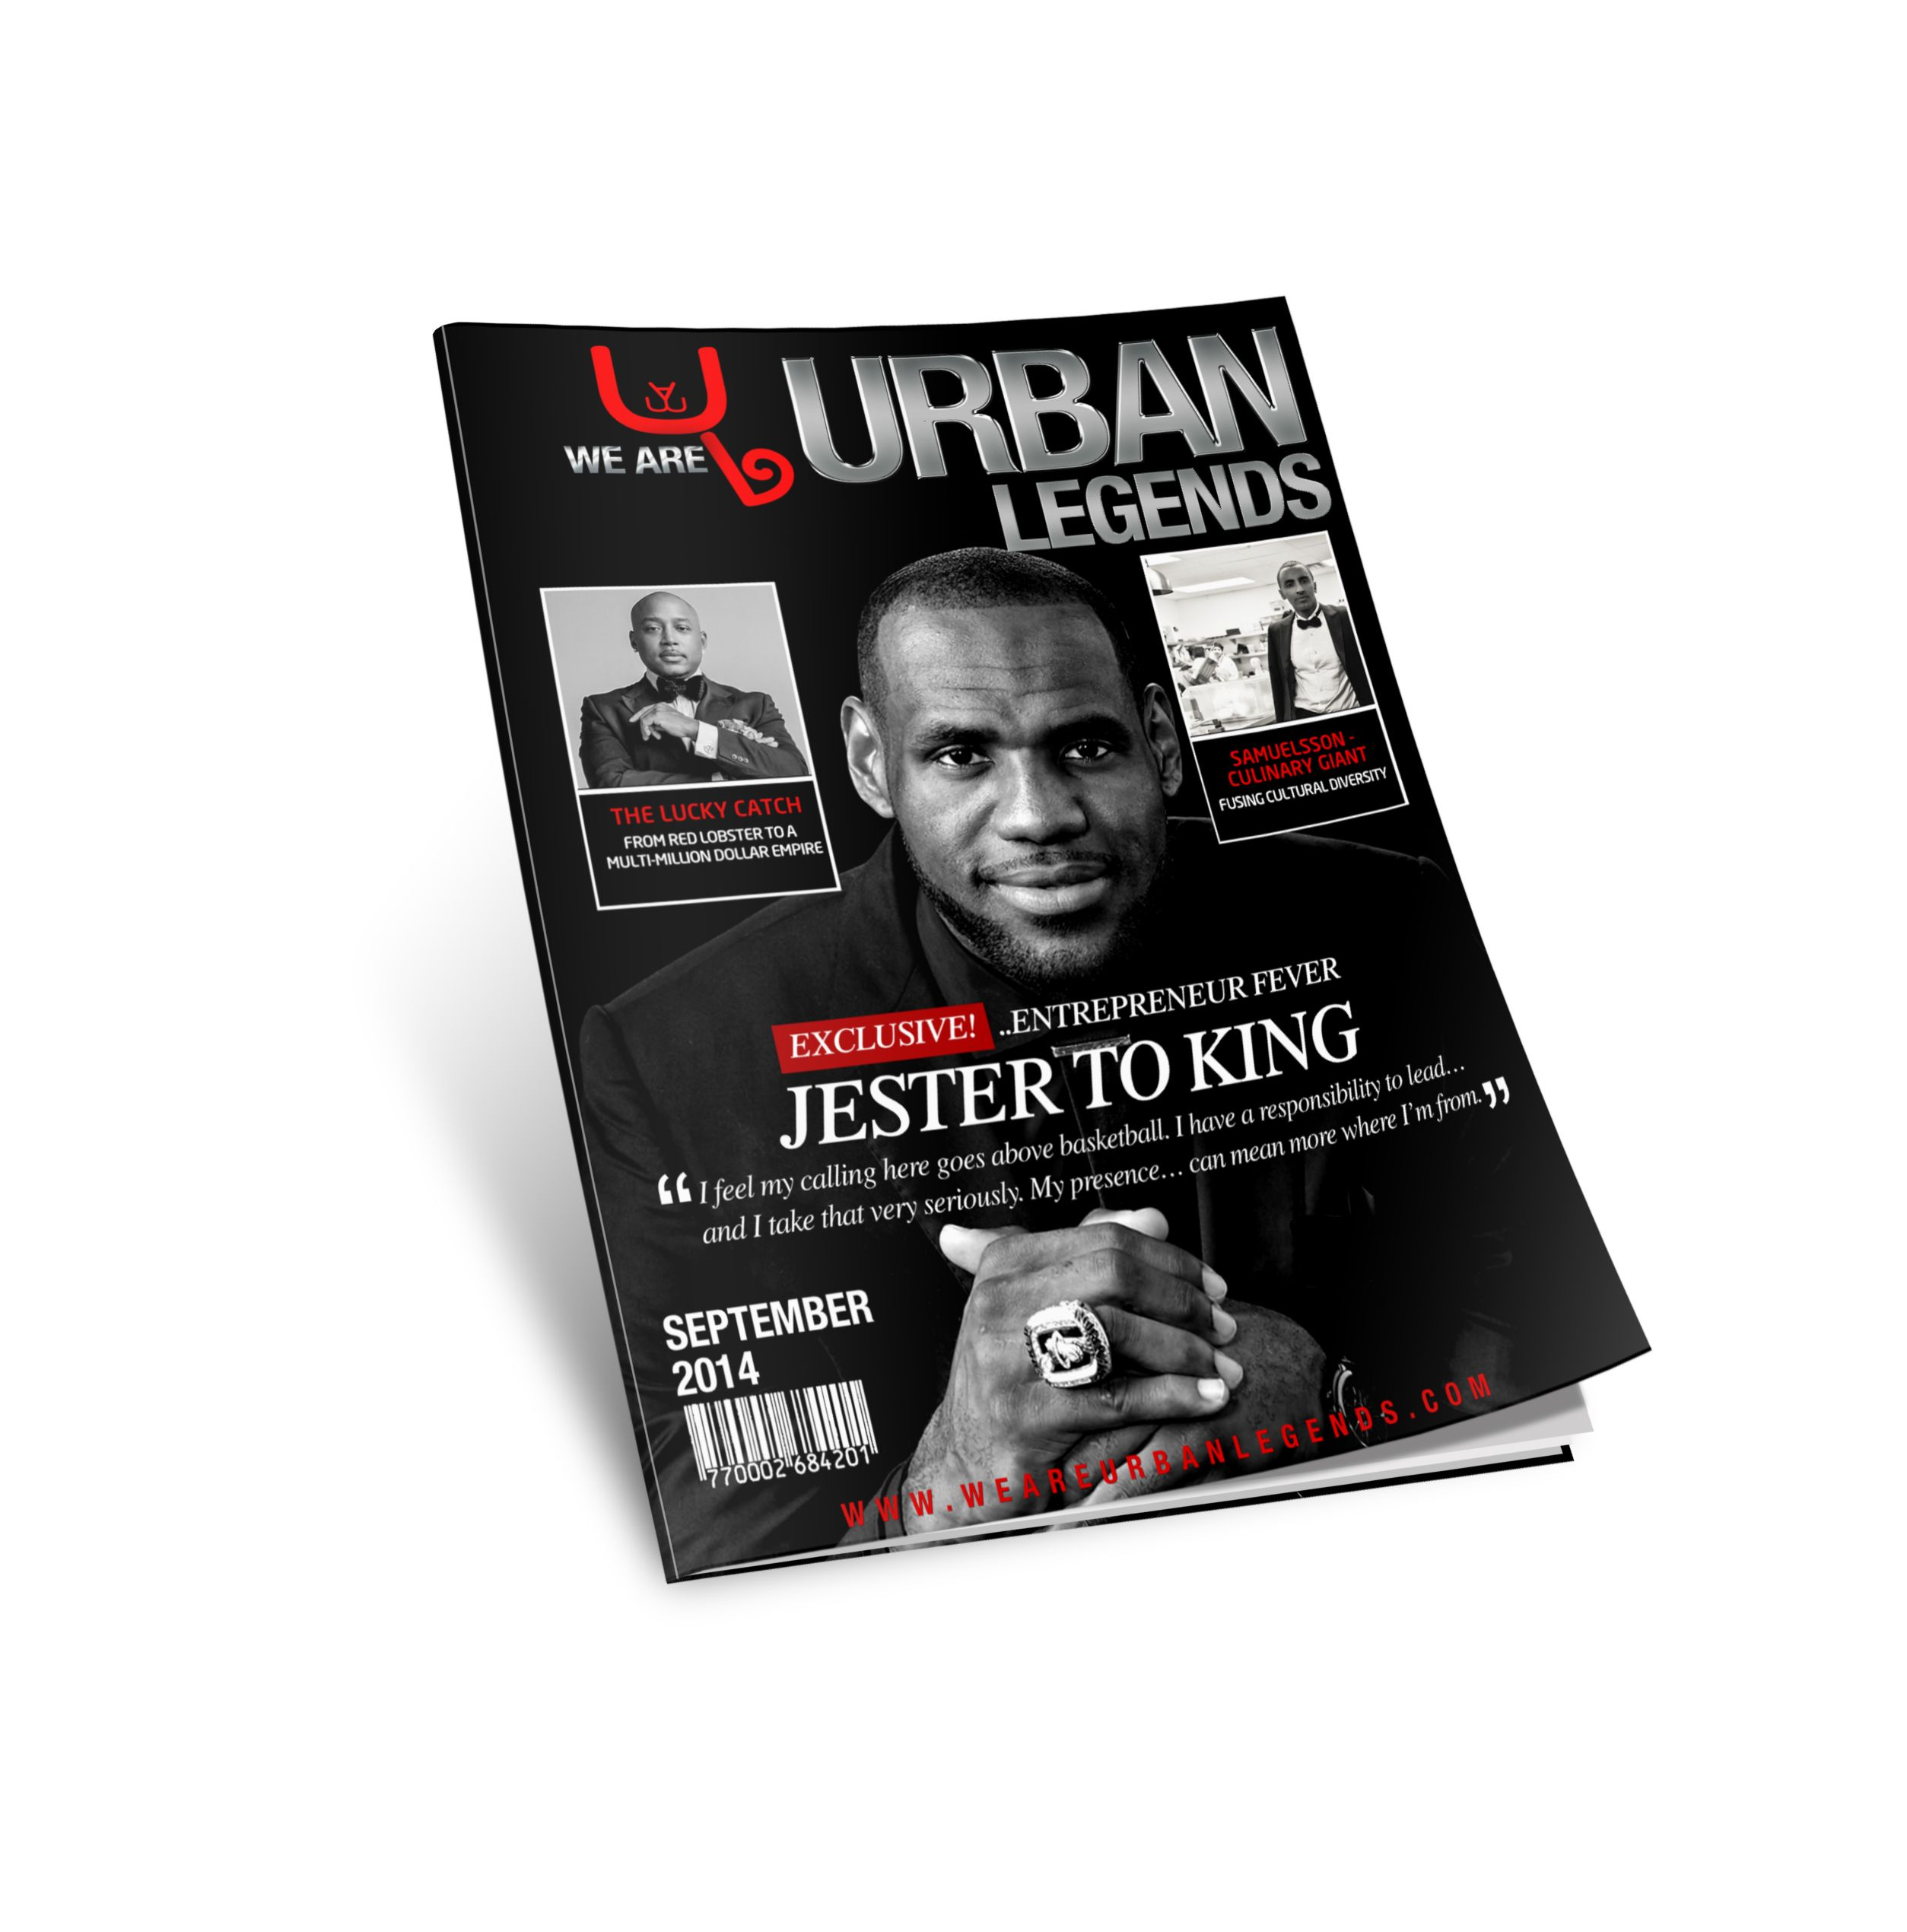 The wait is almost over! Here's your preview of W.A.U.L September 2014 issue. To receive your free issue, please subscribe NOW! #LebronJames #DaymondJohn #MarcusSamuelsson #MiamiHeat #ClevelandCavaliers #NBA #FUBU #SharkTank #HipHop #RedRooster #Harlem #Entrepreneur #Business #Blog